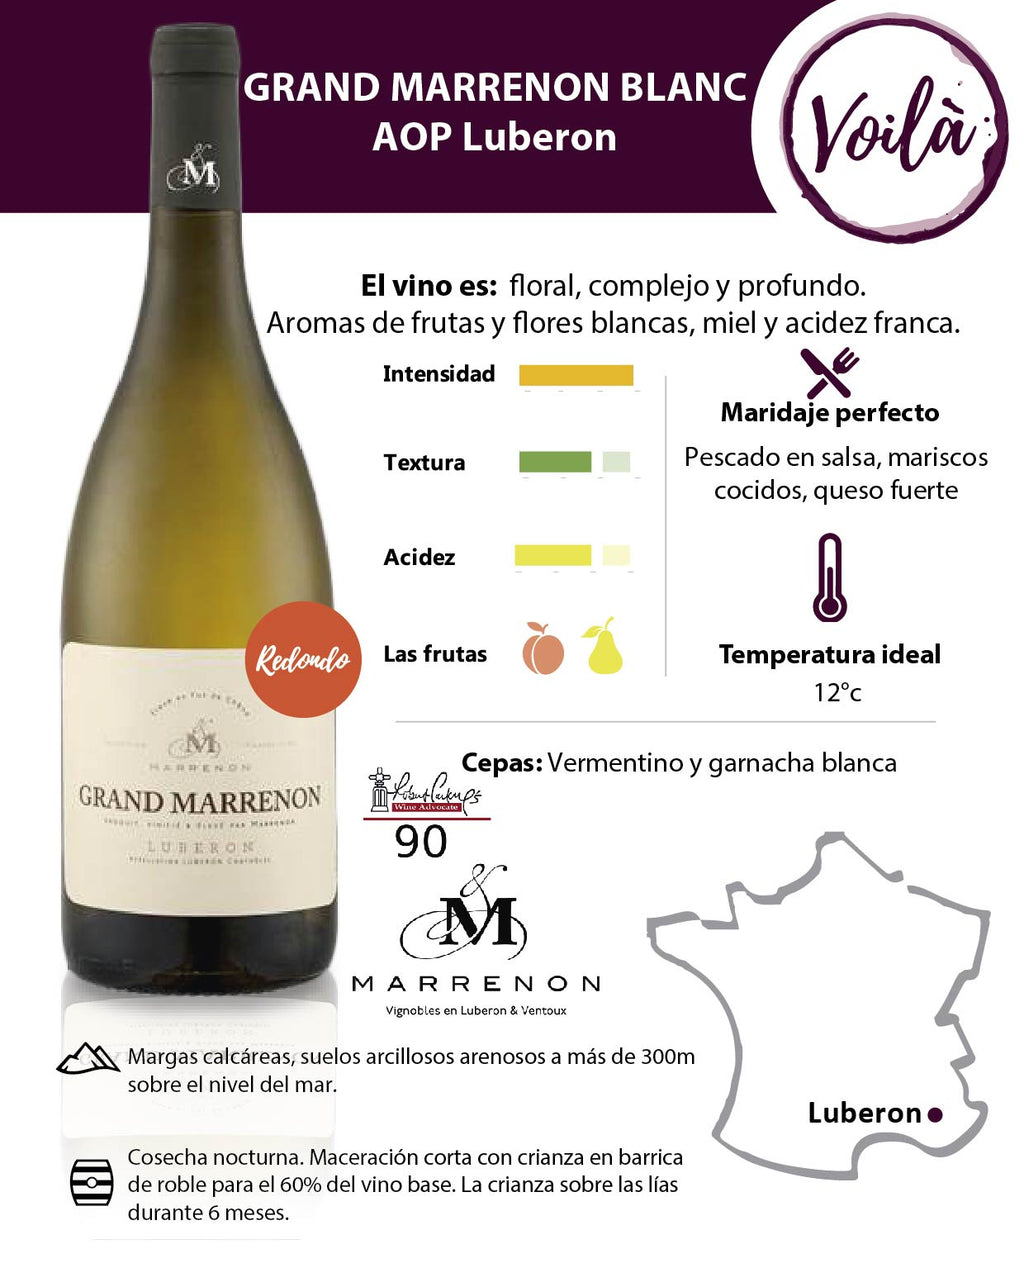 GRAND MARRENON BLANCO, AOC LUBERON